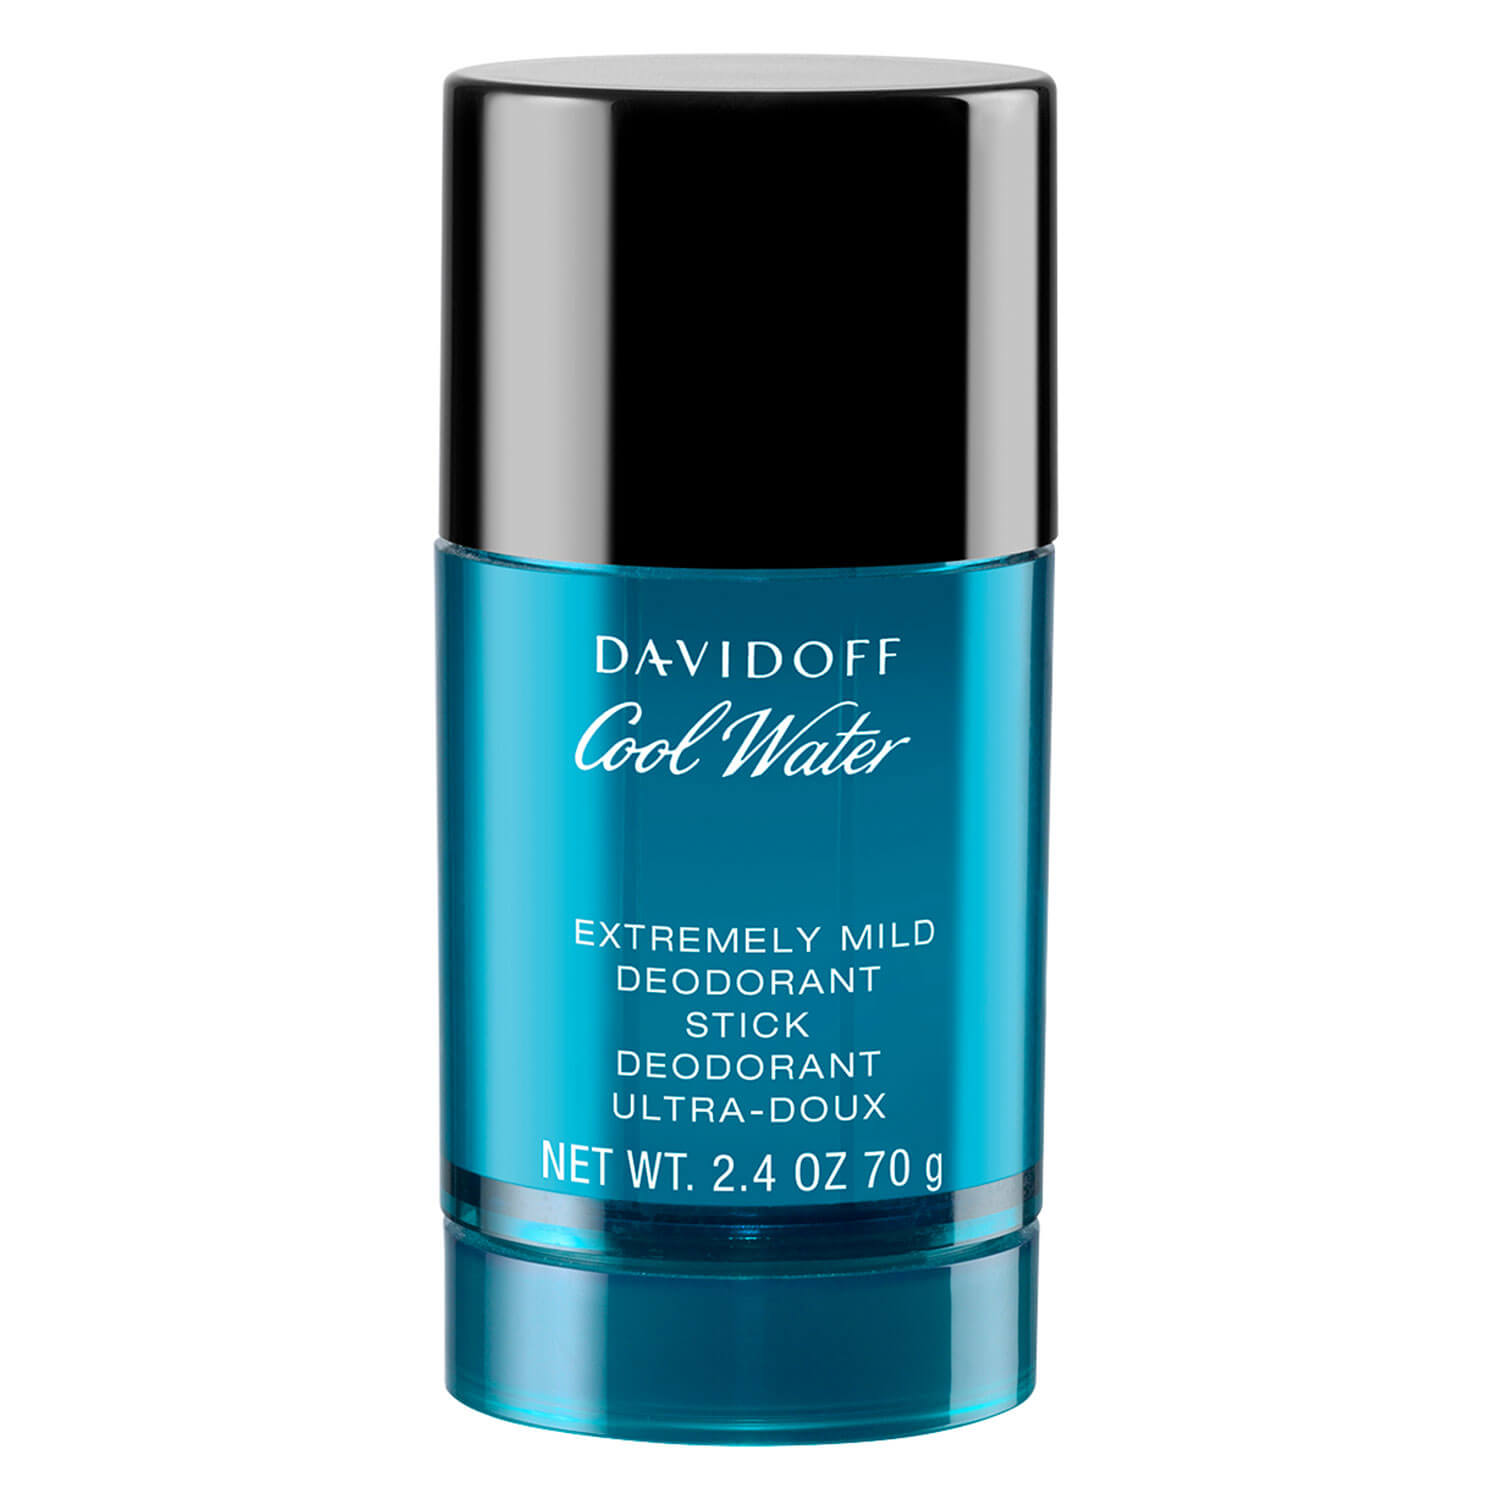 Cool Water - Extremely Mild Deo Stick